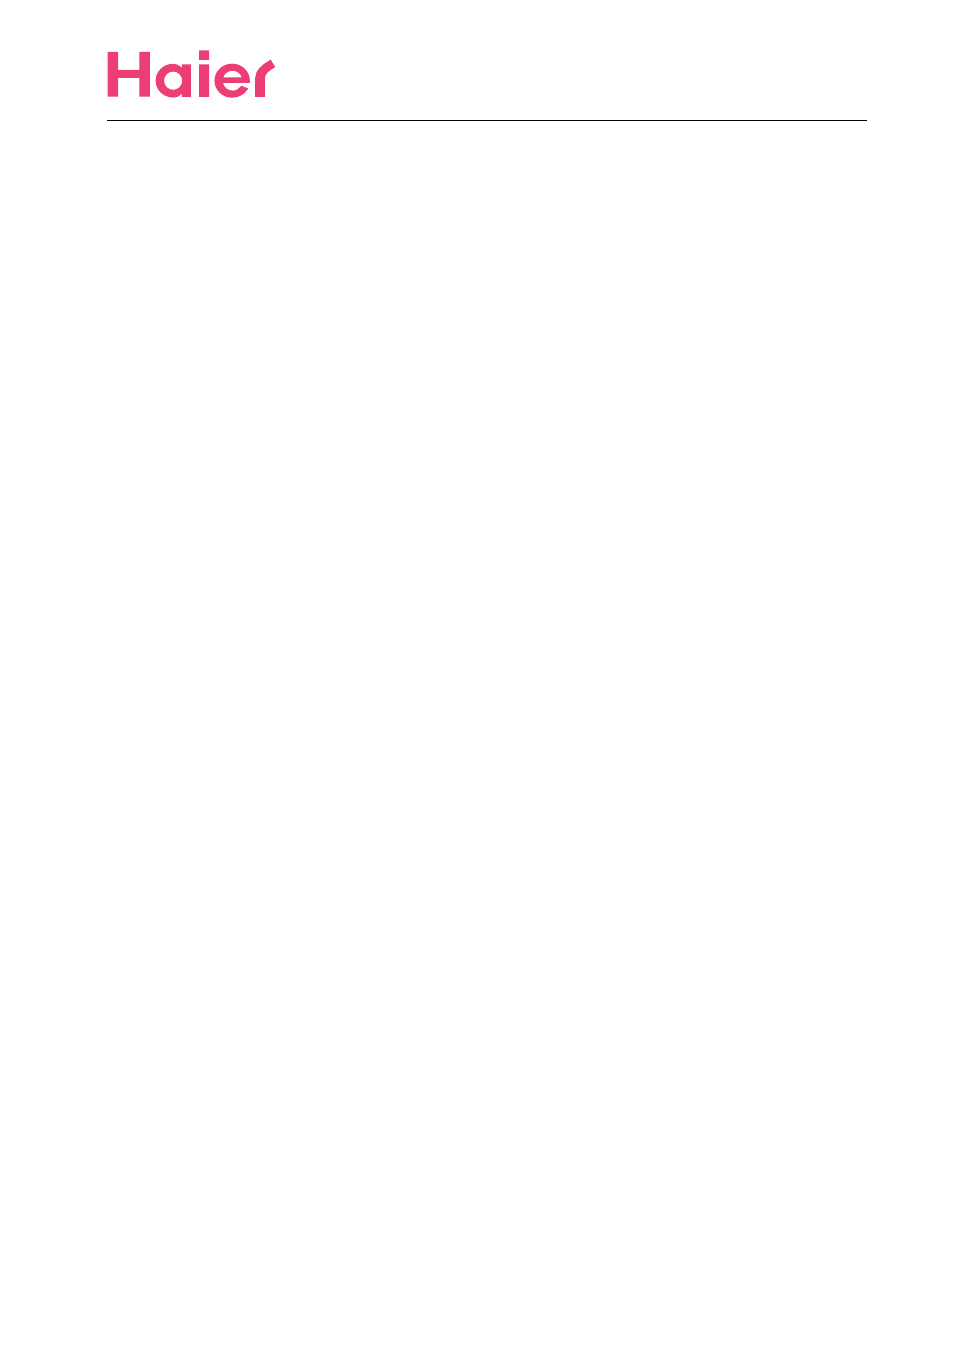 circuit and wiring diagram haier hd456 user manual page 14 18